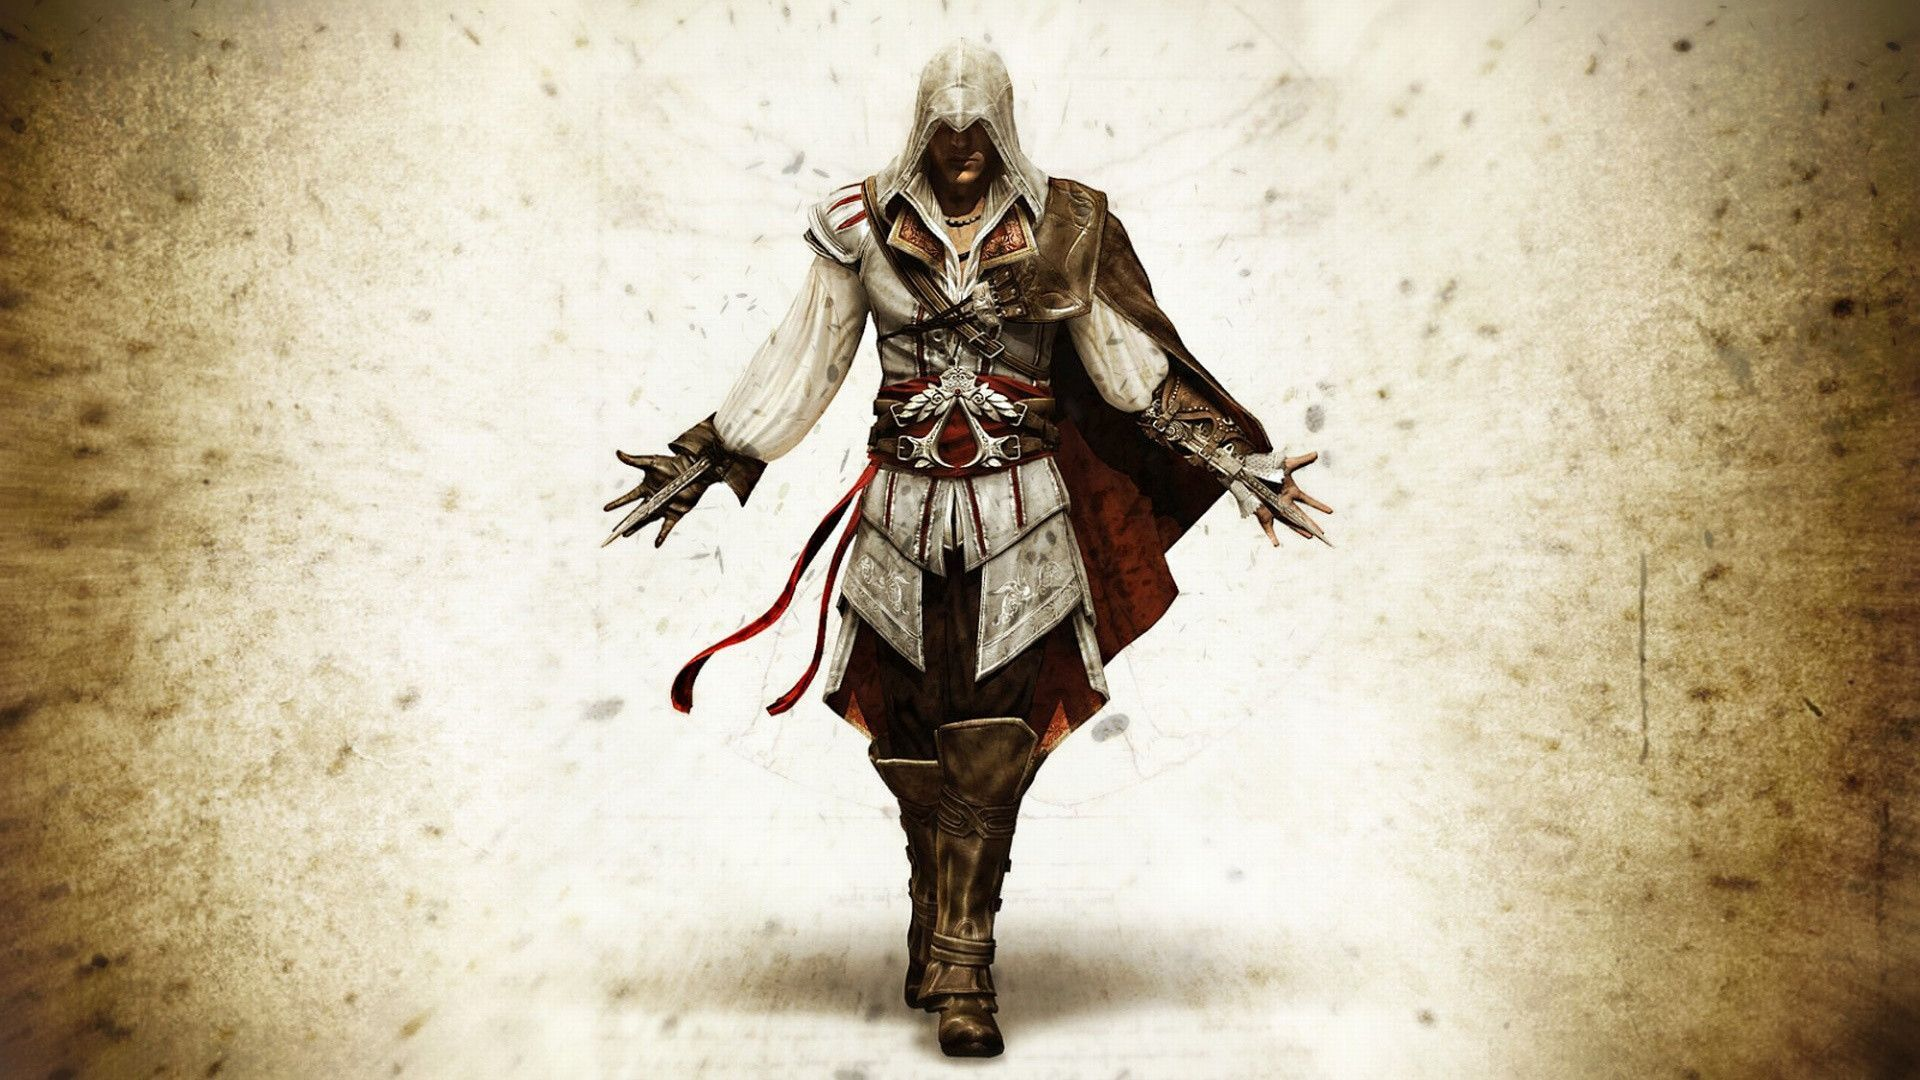 Assassins Creed Hd Wallpapers Wallpaper Assassin S Creed Wallpaper Assassin S Creed Assassins Creed